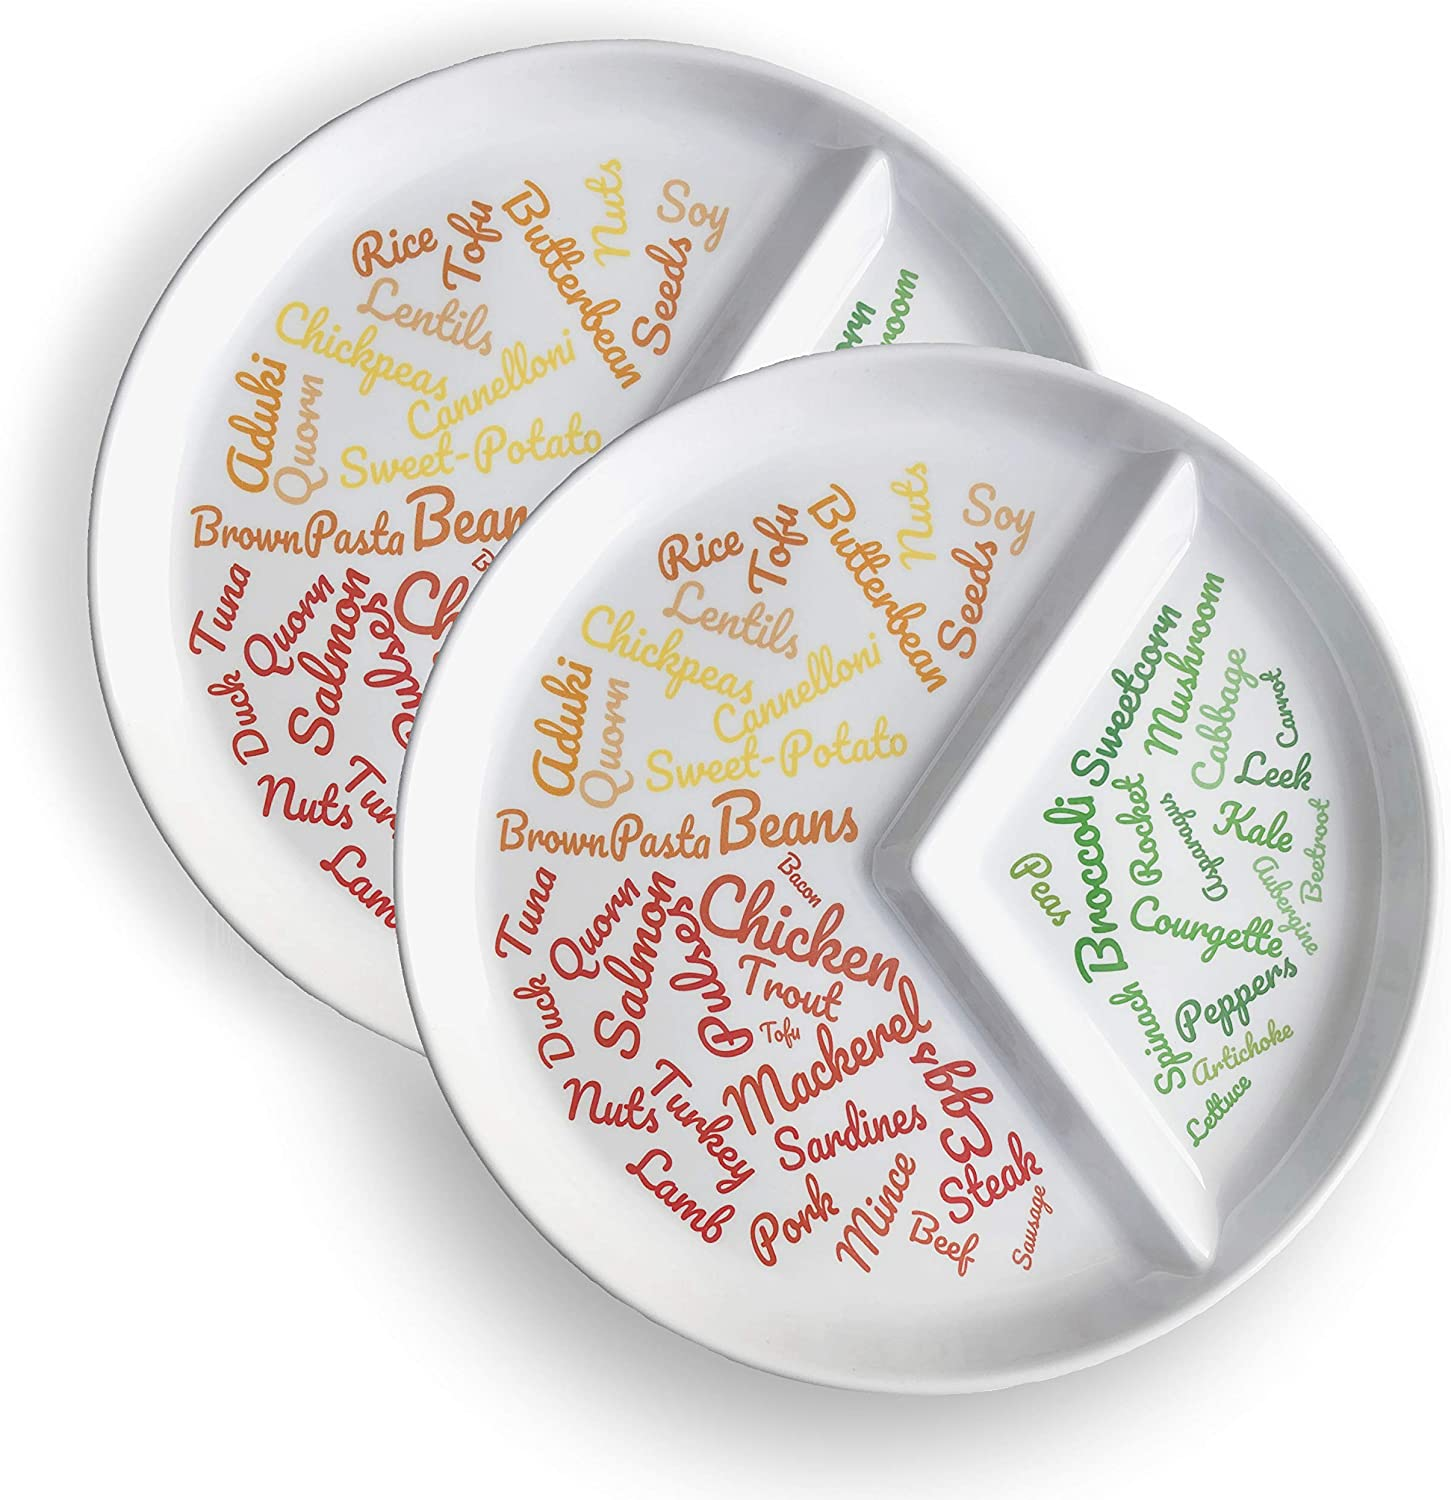 New: Divided Slimming Plate for Easy Portion Control (2 Pack) | Beautifully Designed Portion Control & Food Ideas for Sustainable Weight Loss | Easily Follow a Balanced Diet